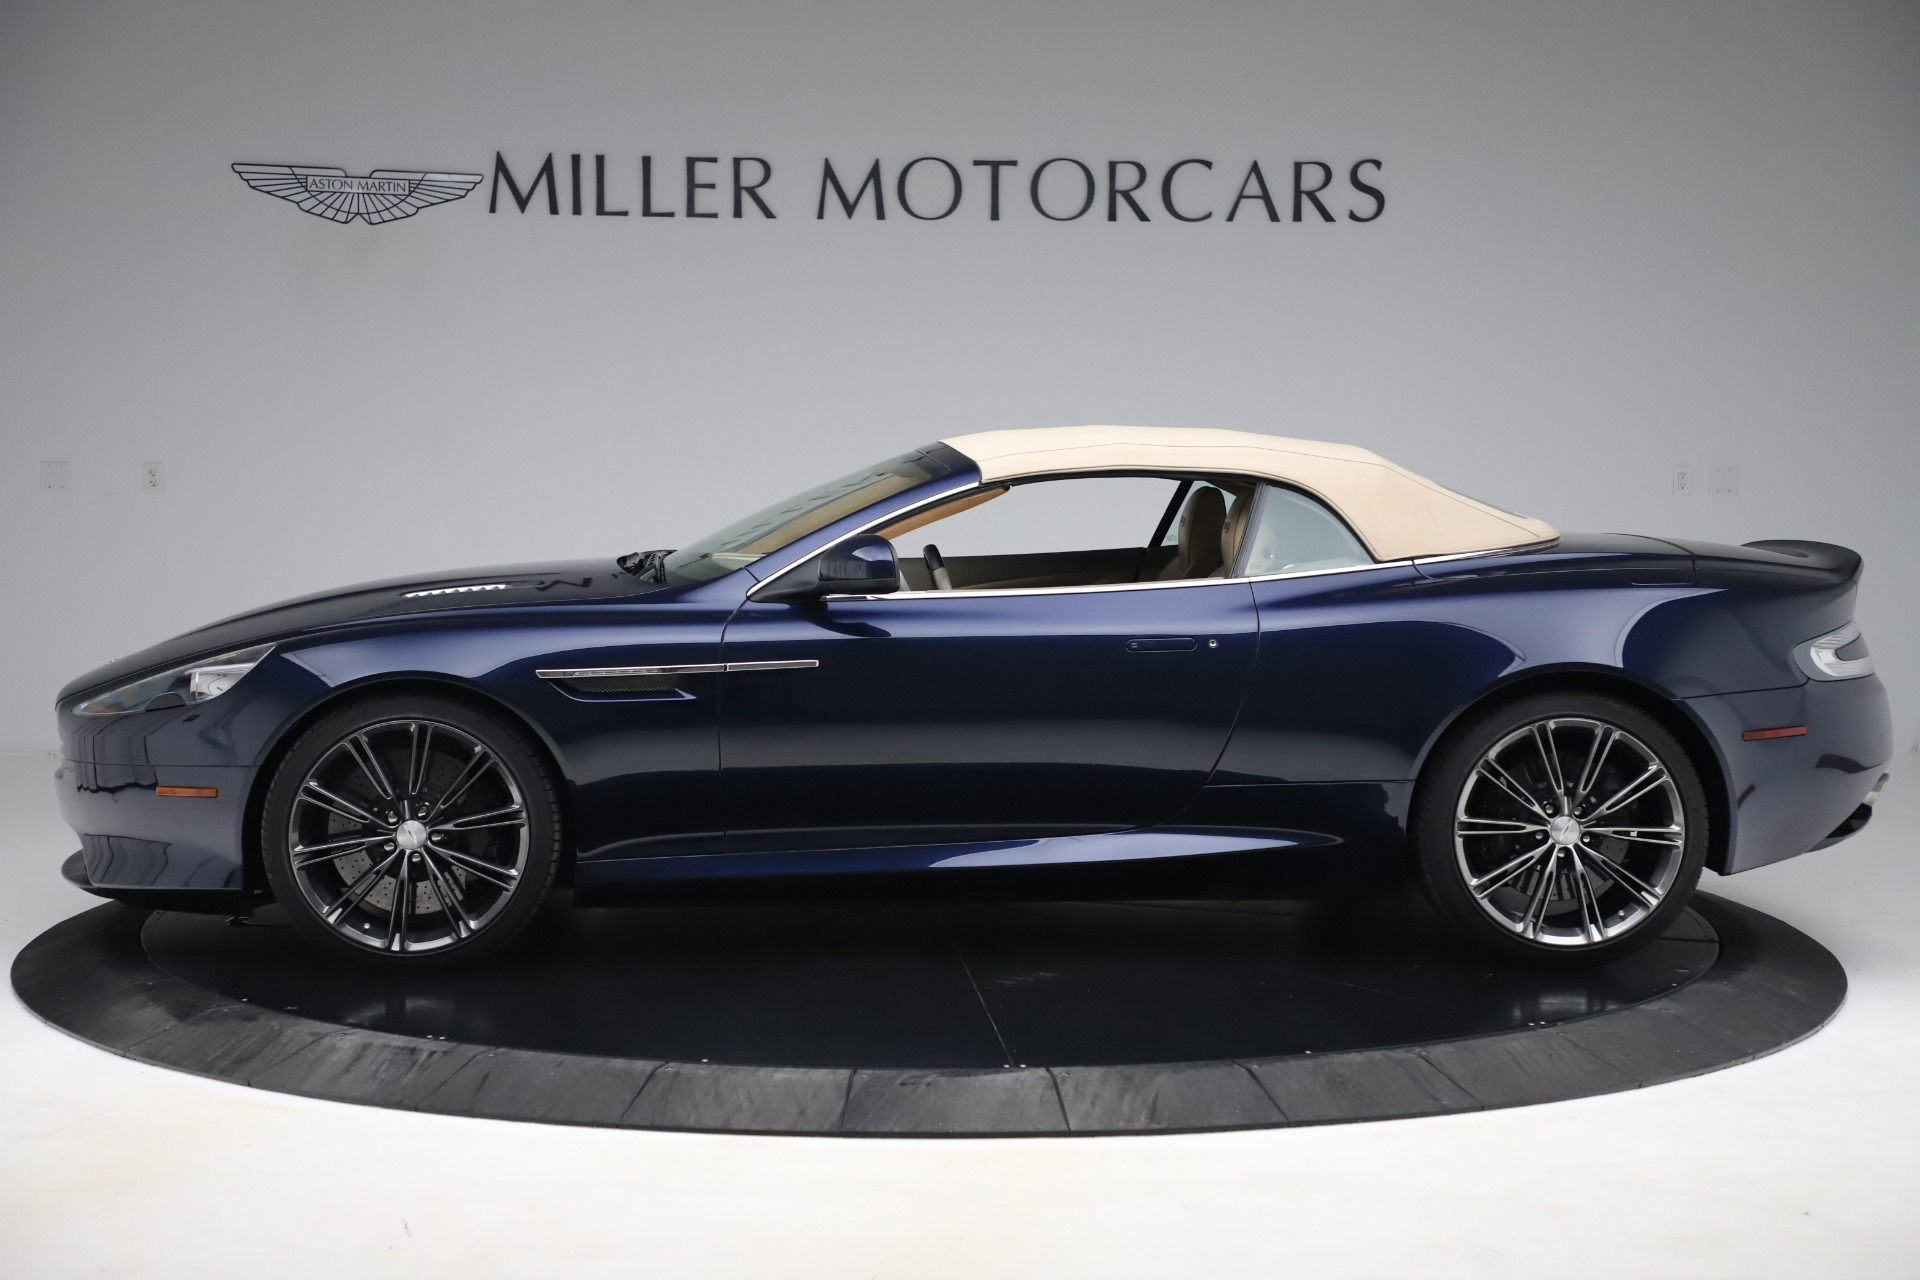 Used 2014 Aston Martin DB9 Volante For Sale In Westport, CT 3591_p14